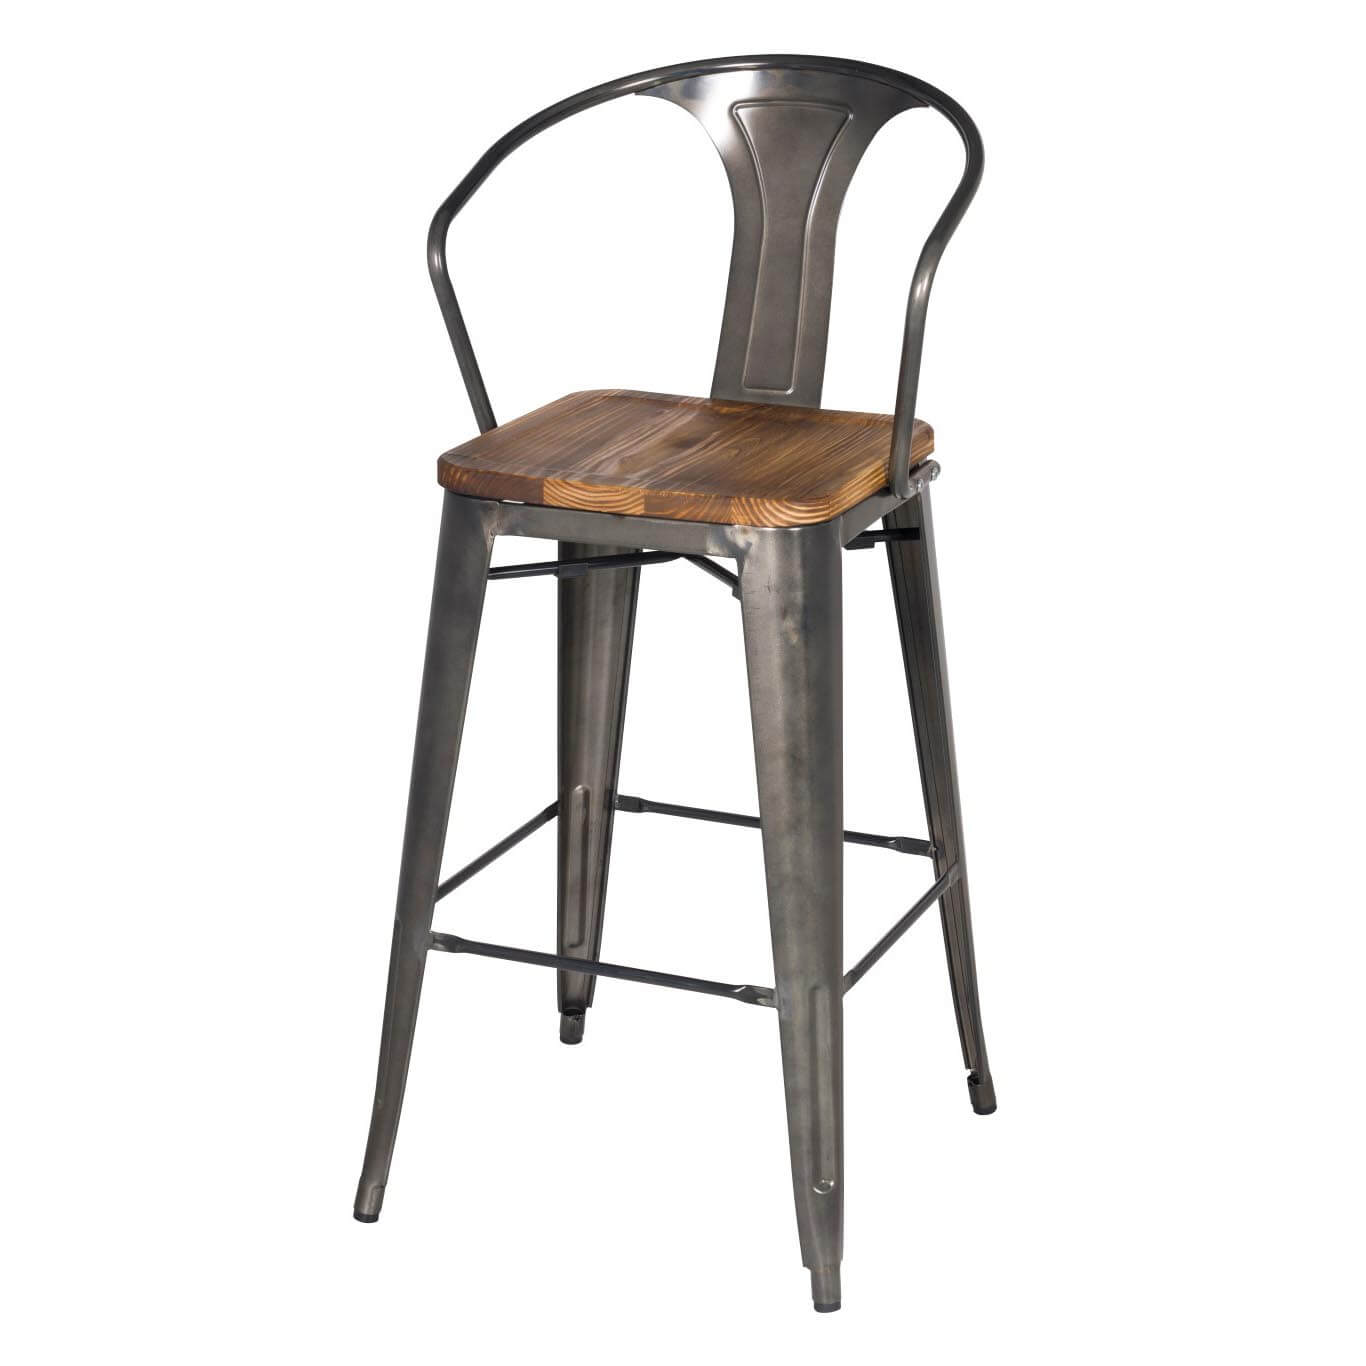 Metropolis Metal Bar Stool Wood Seat Black Set of 4 Buy  : 938544 GM from www.sohomod.com size 1366 x 1366 jpeg 166kB